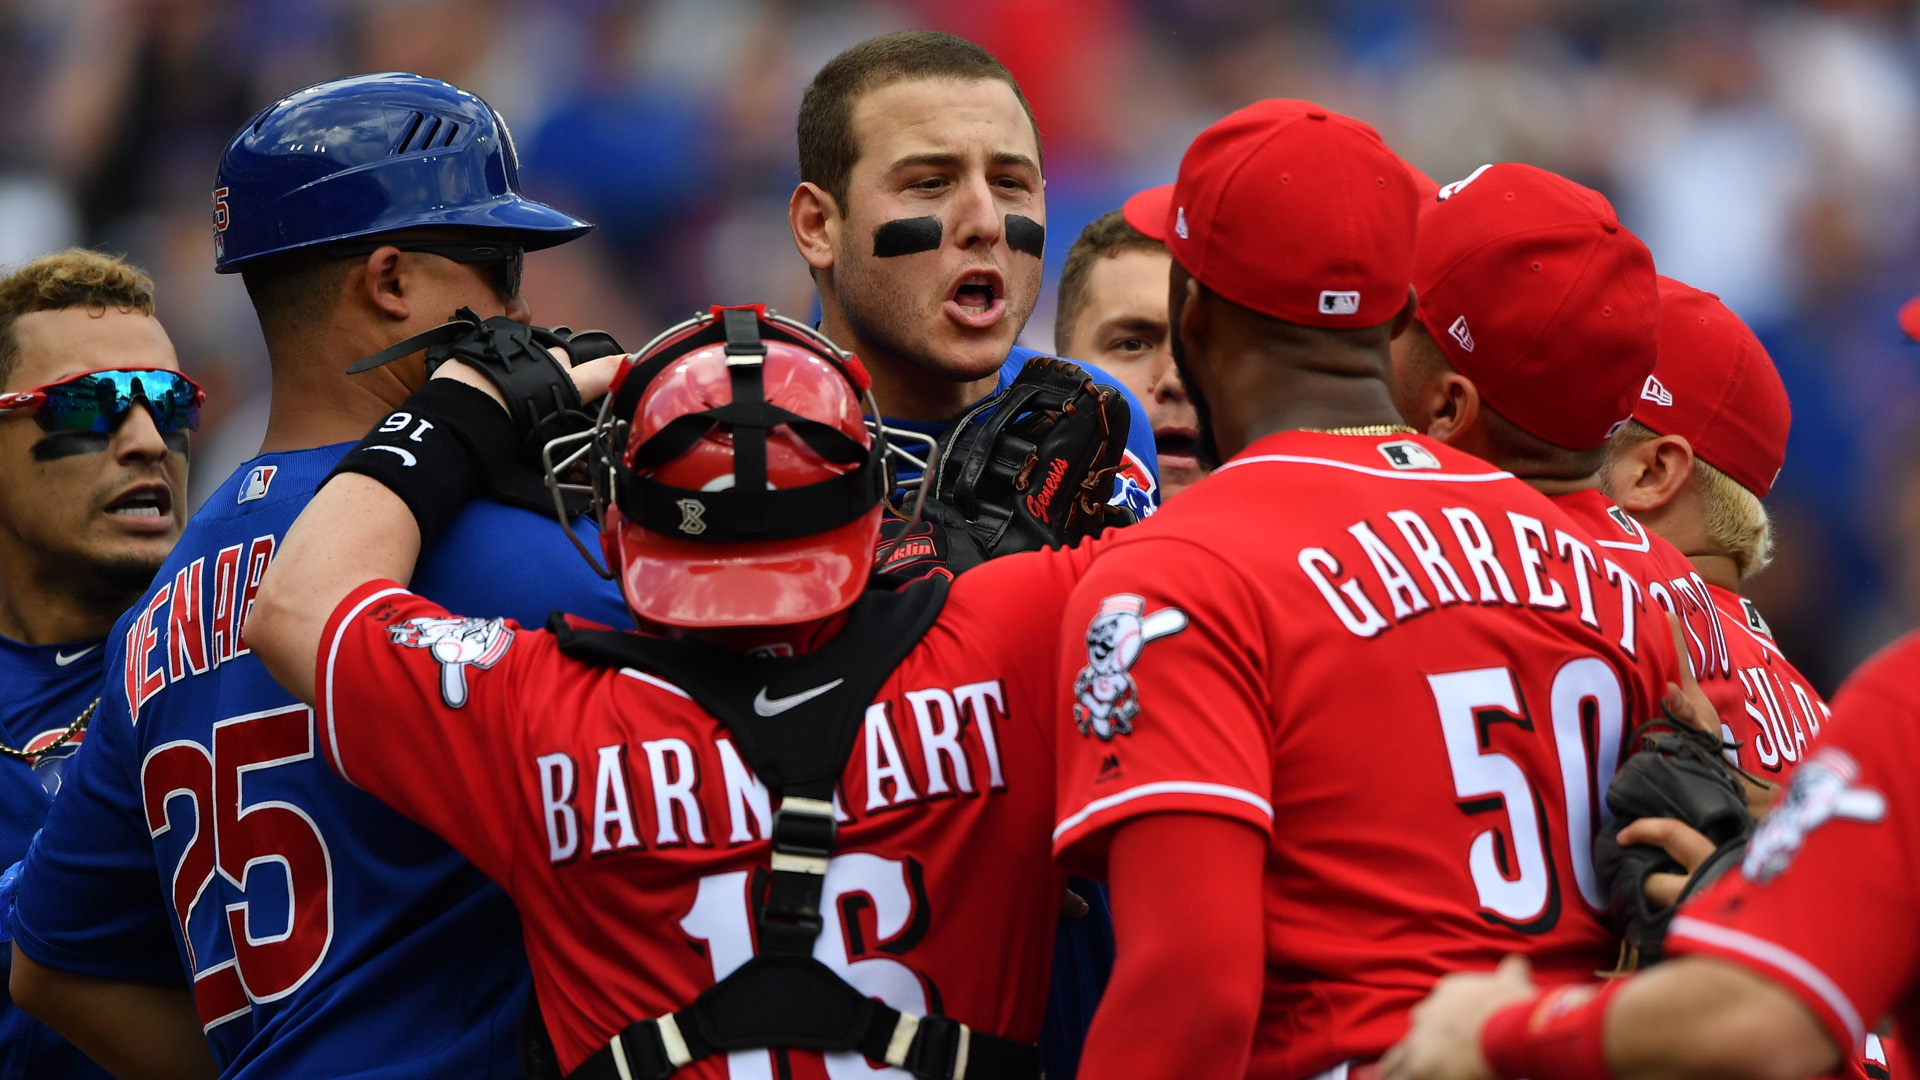 Cubs' Javy Baez on Reds' Amir Garrett: 'If you want to fight you're in the wrong sport'